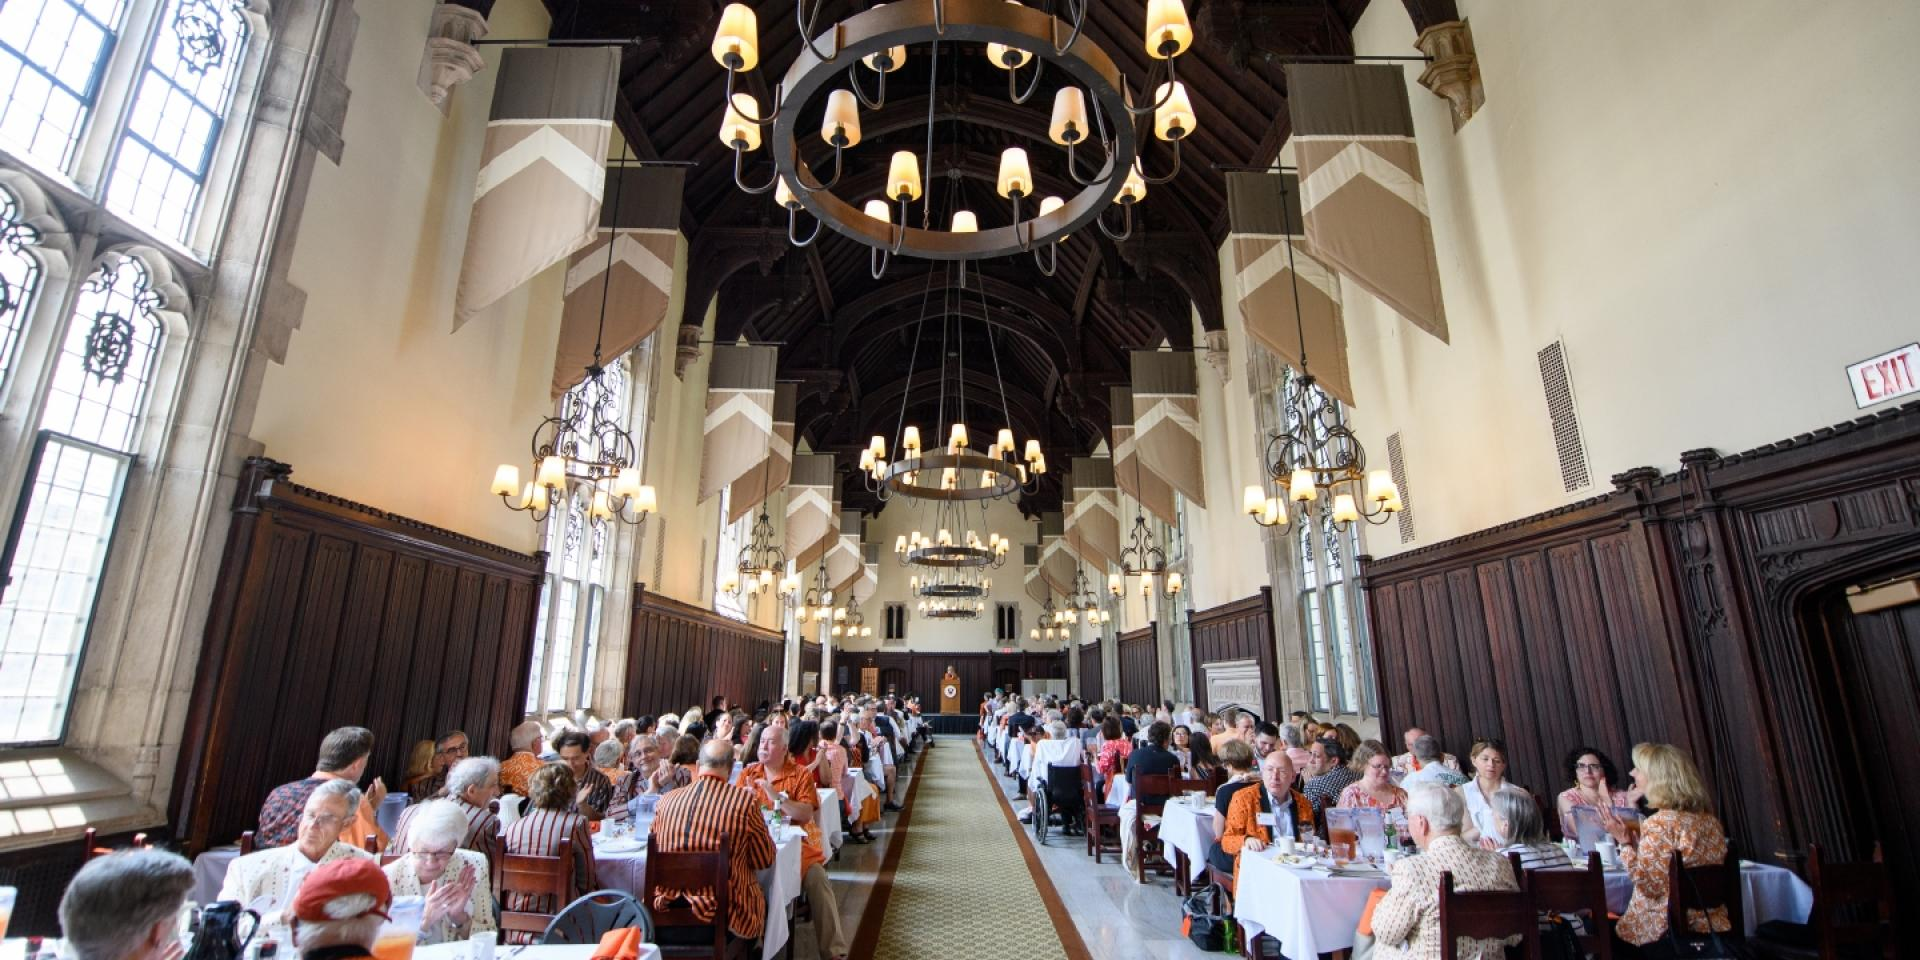 Alumni Council meeting in Rocky Dining Room during Reunions